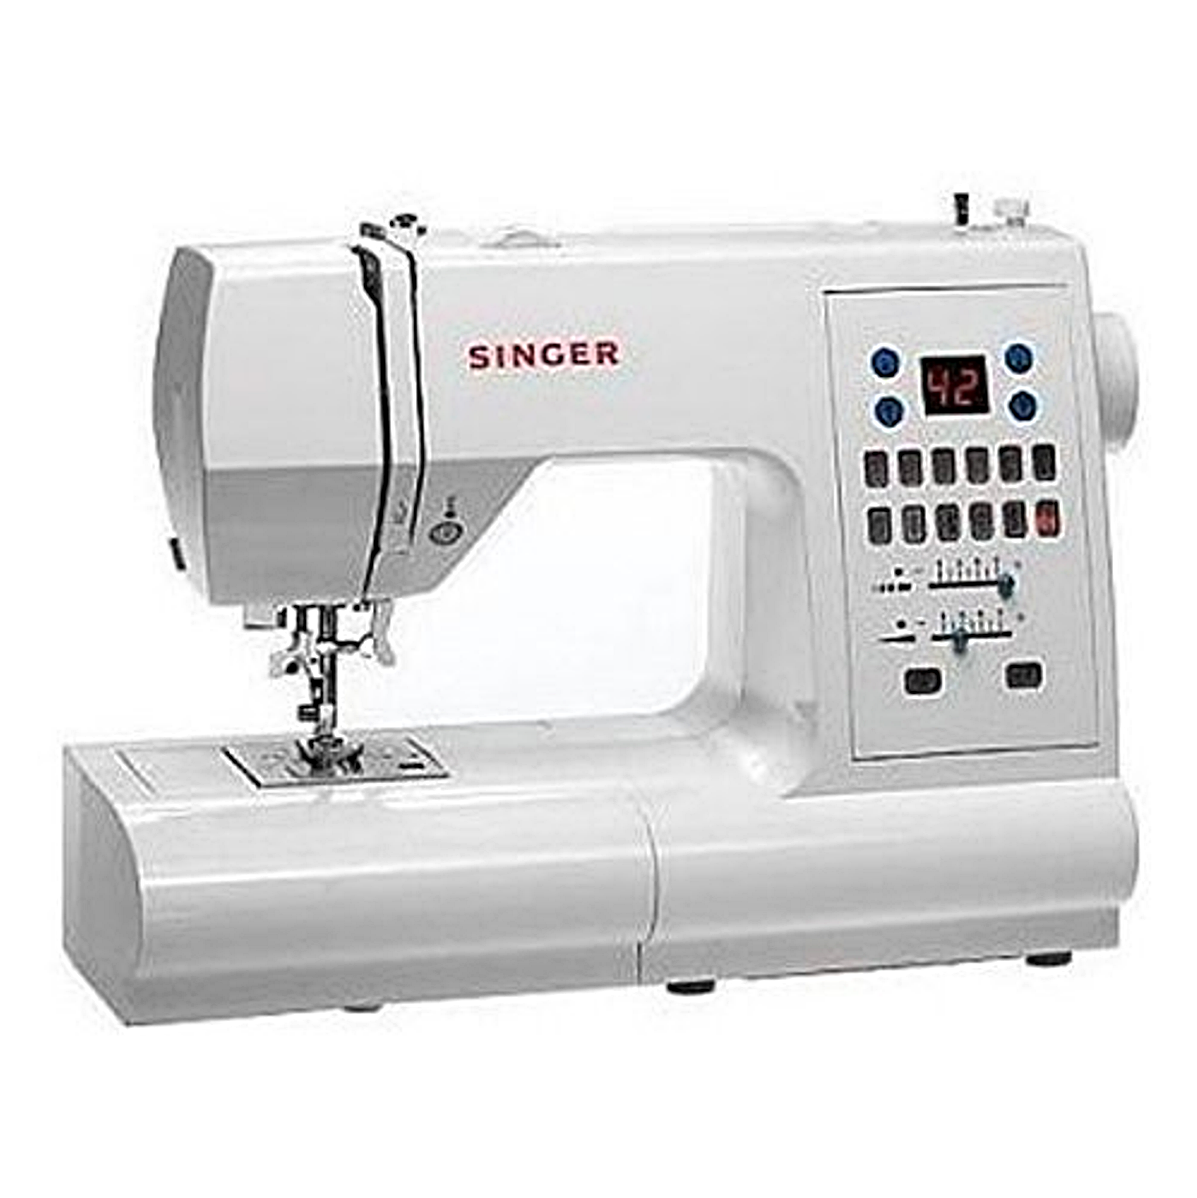 Singer 7468 Sewing Machine Review